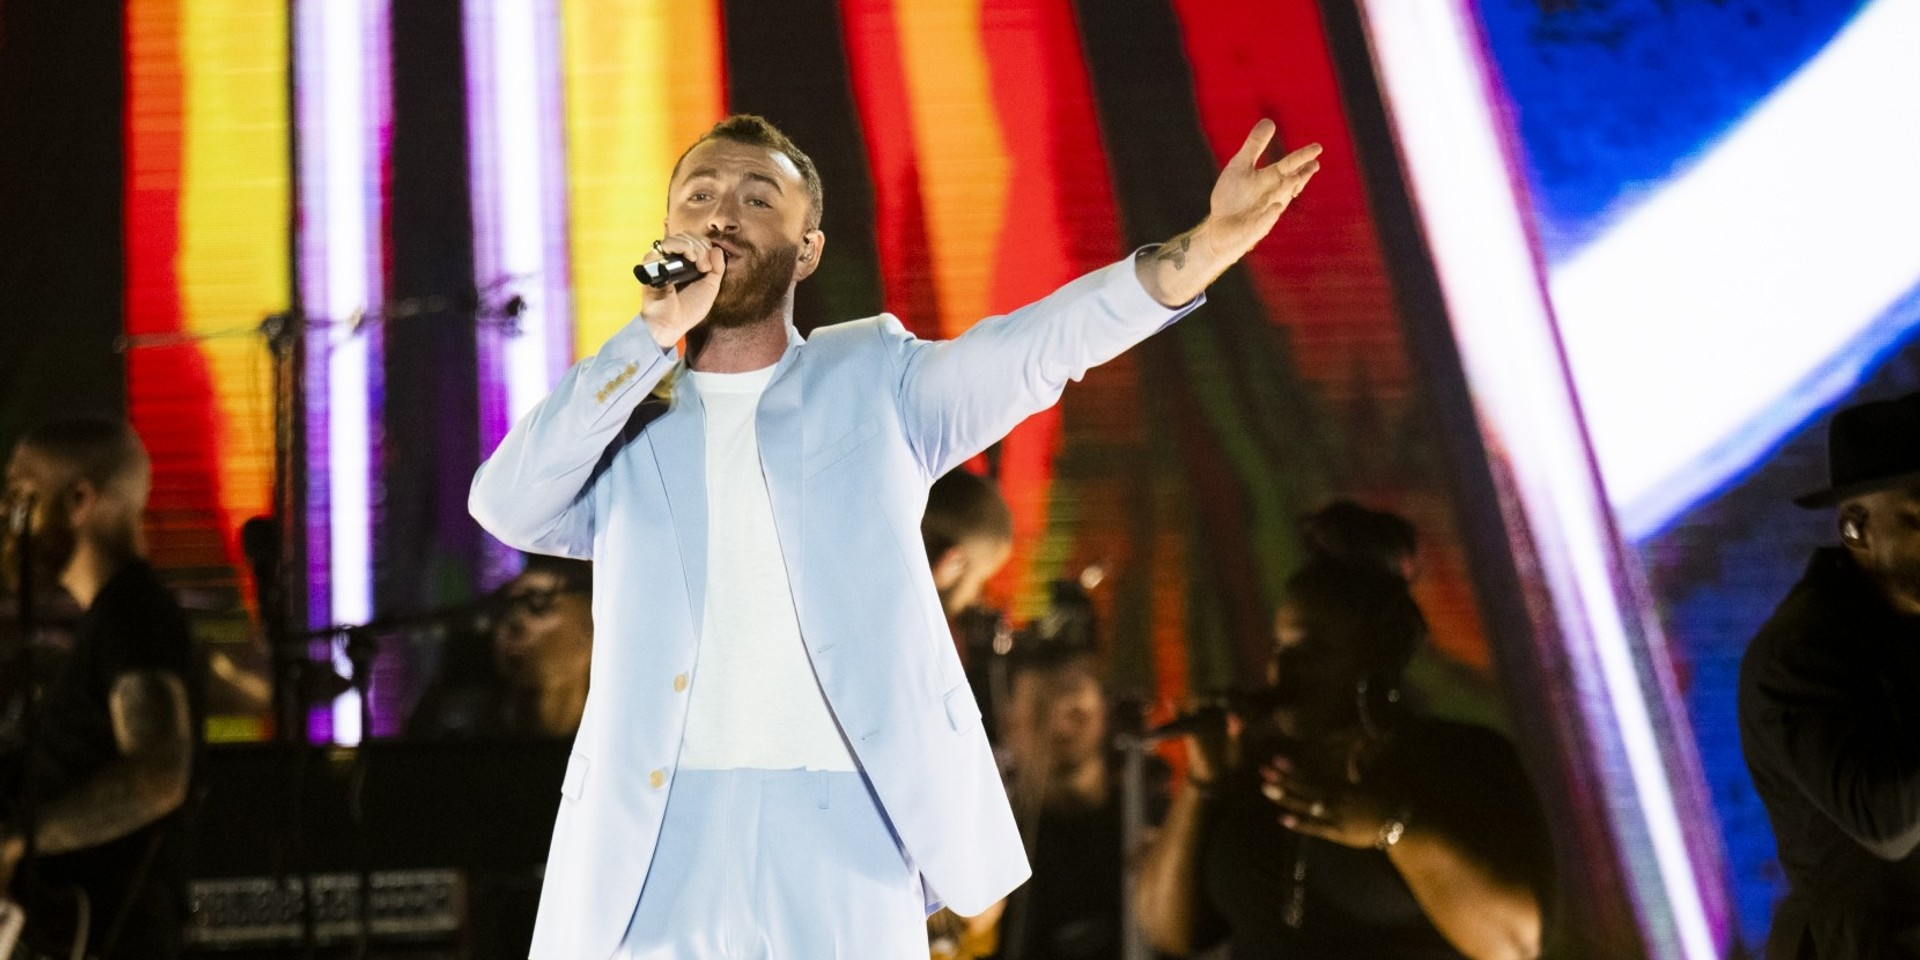 Sam Smith spreads love in debut Singapore shows – gig report